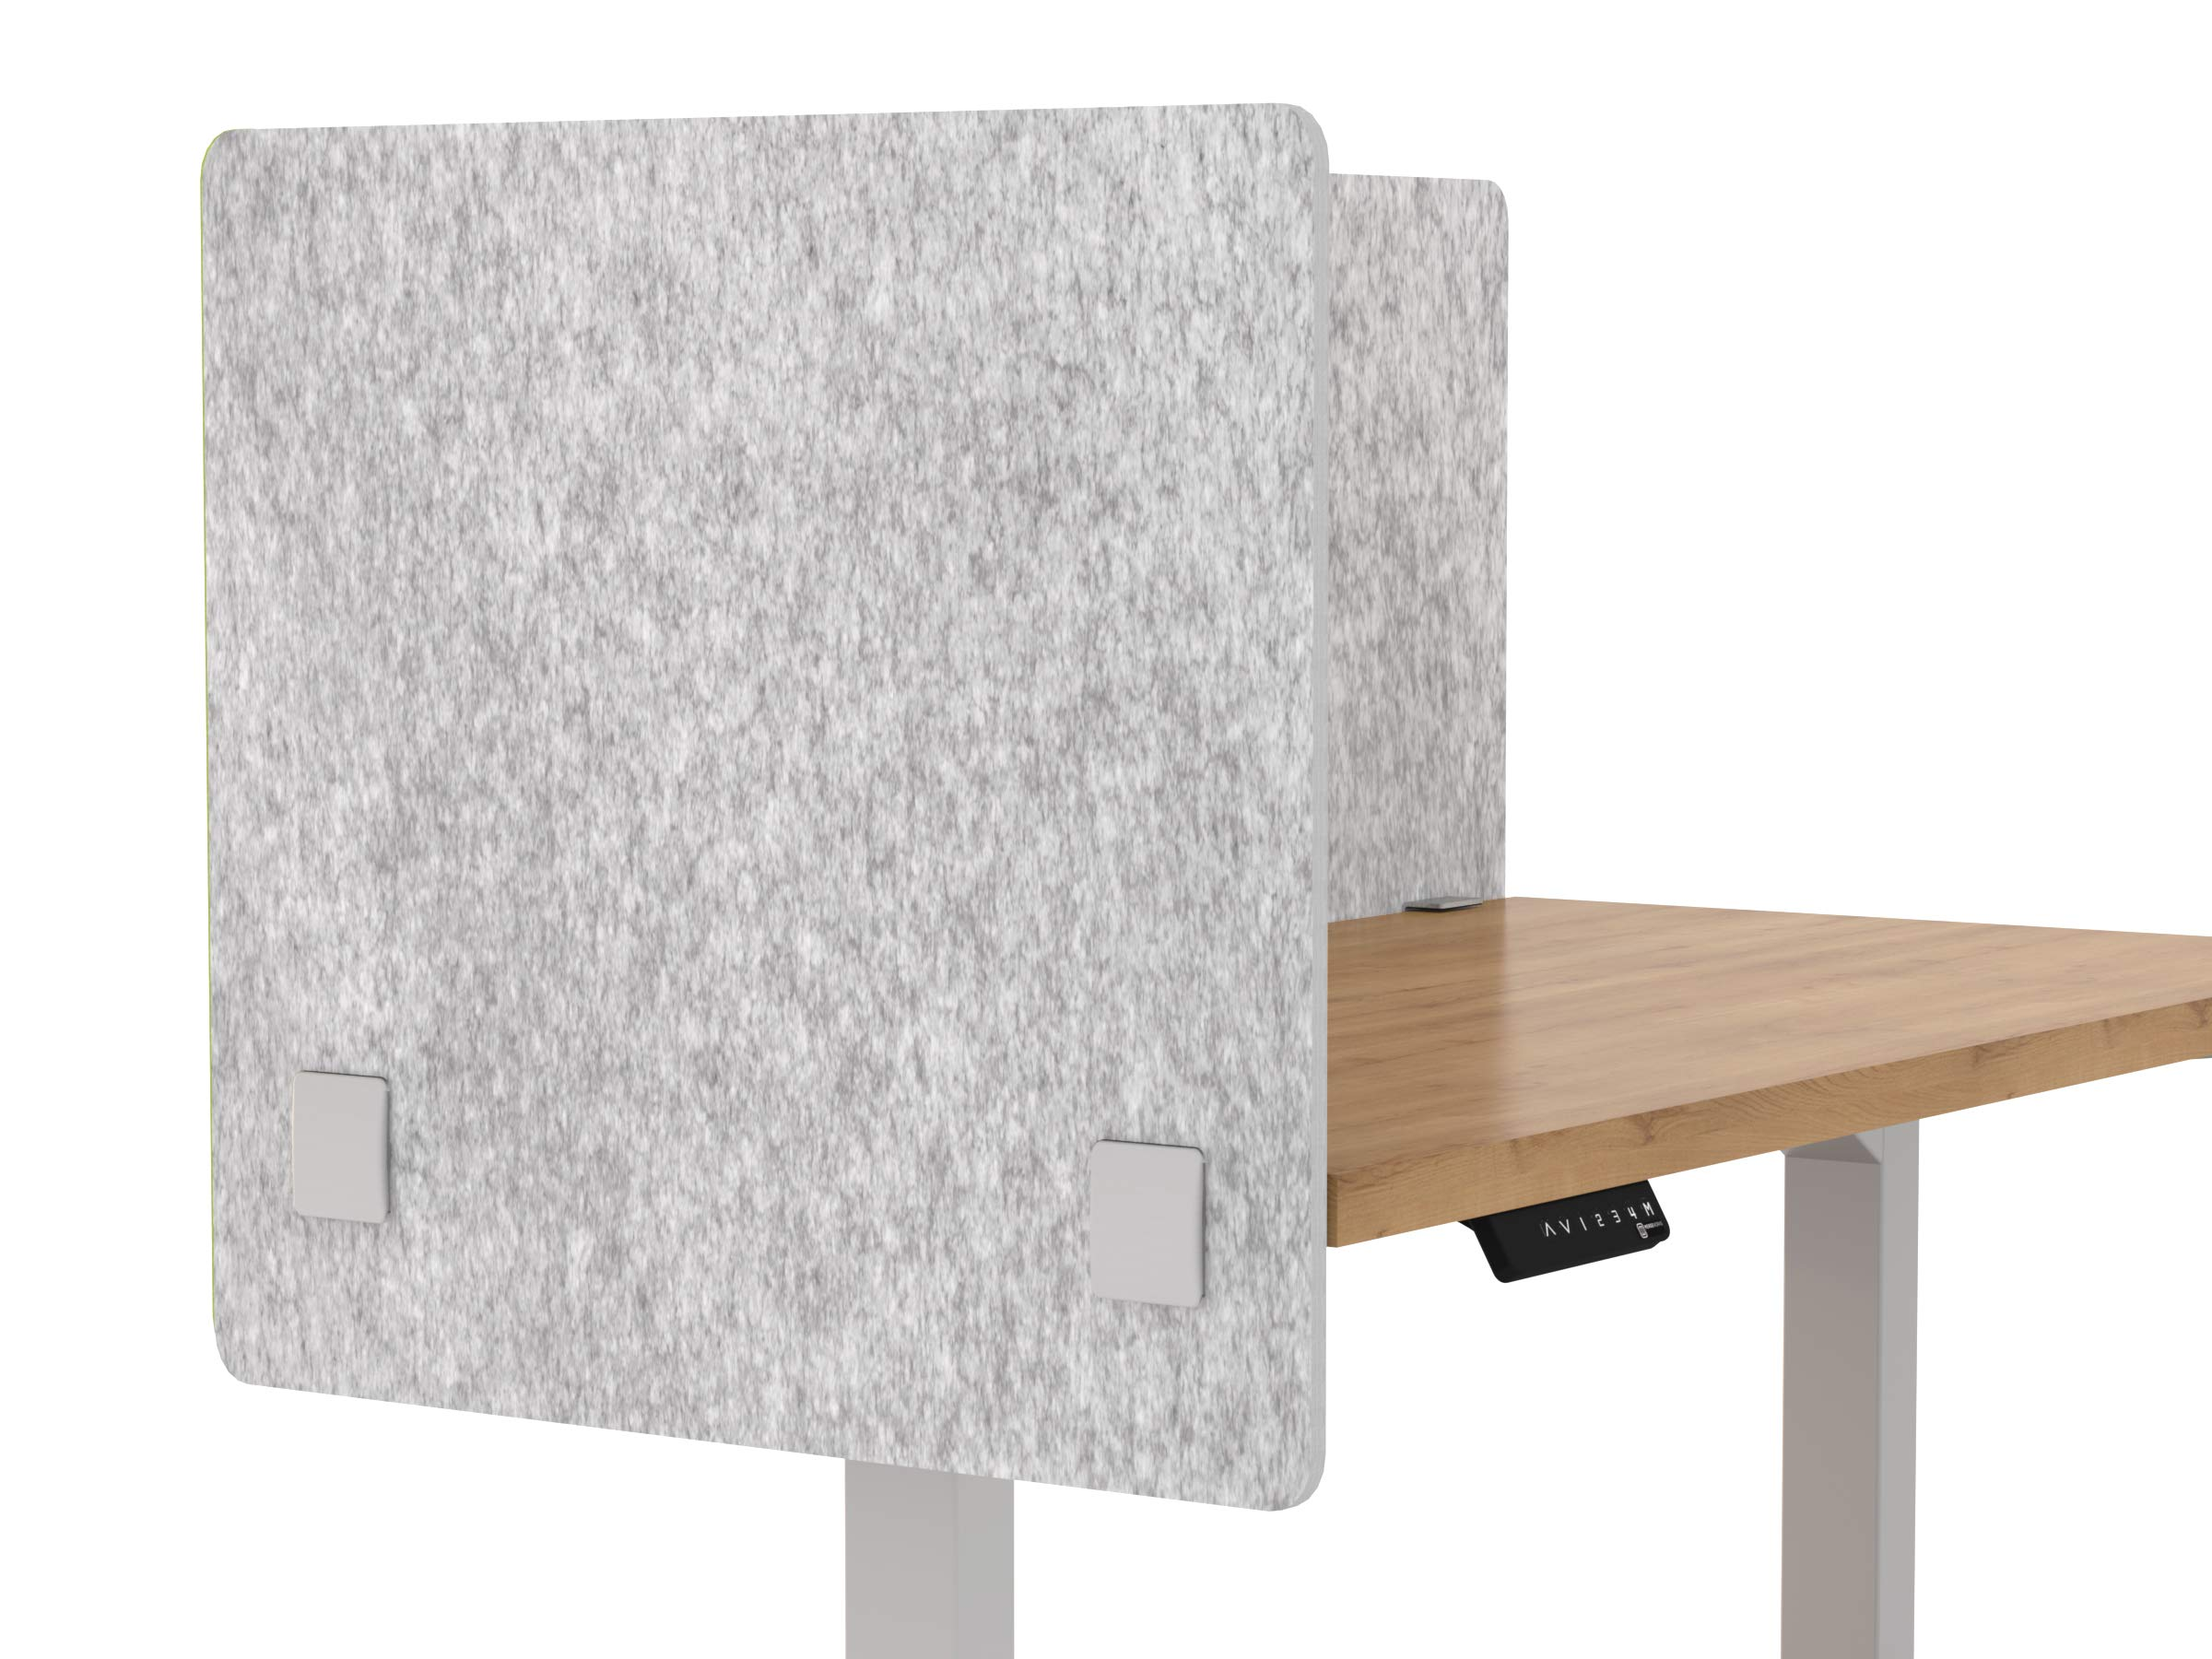 VaRoom Acoustic Partition, Sound Absorbing Desk Divider - 30'' W x 24''H Privacy Desk Mounted Cubicle Panel, Iced Grey by VaRoom